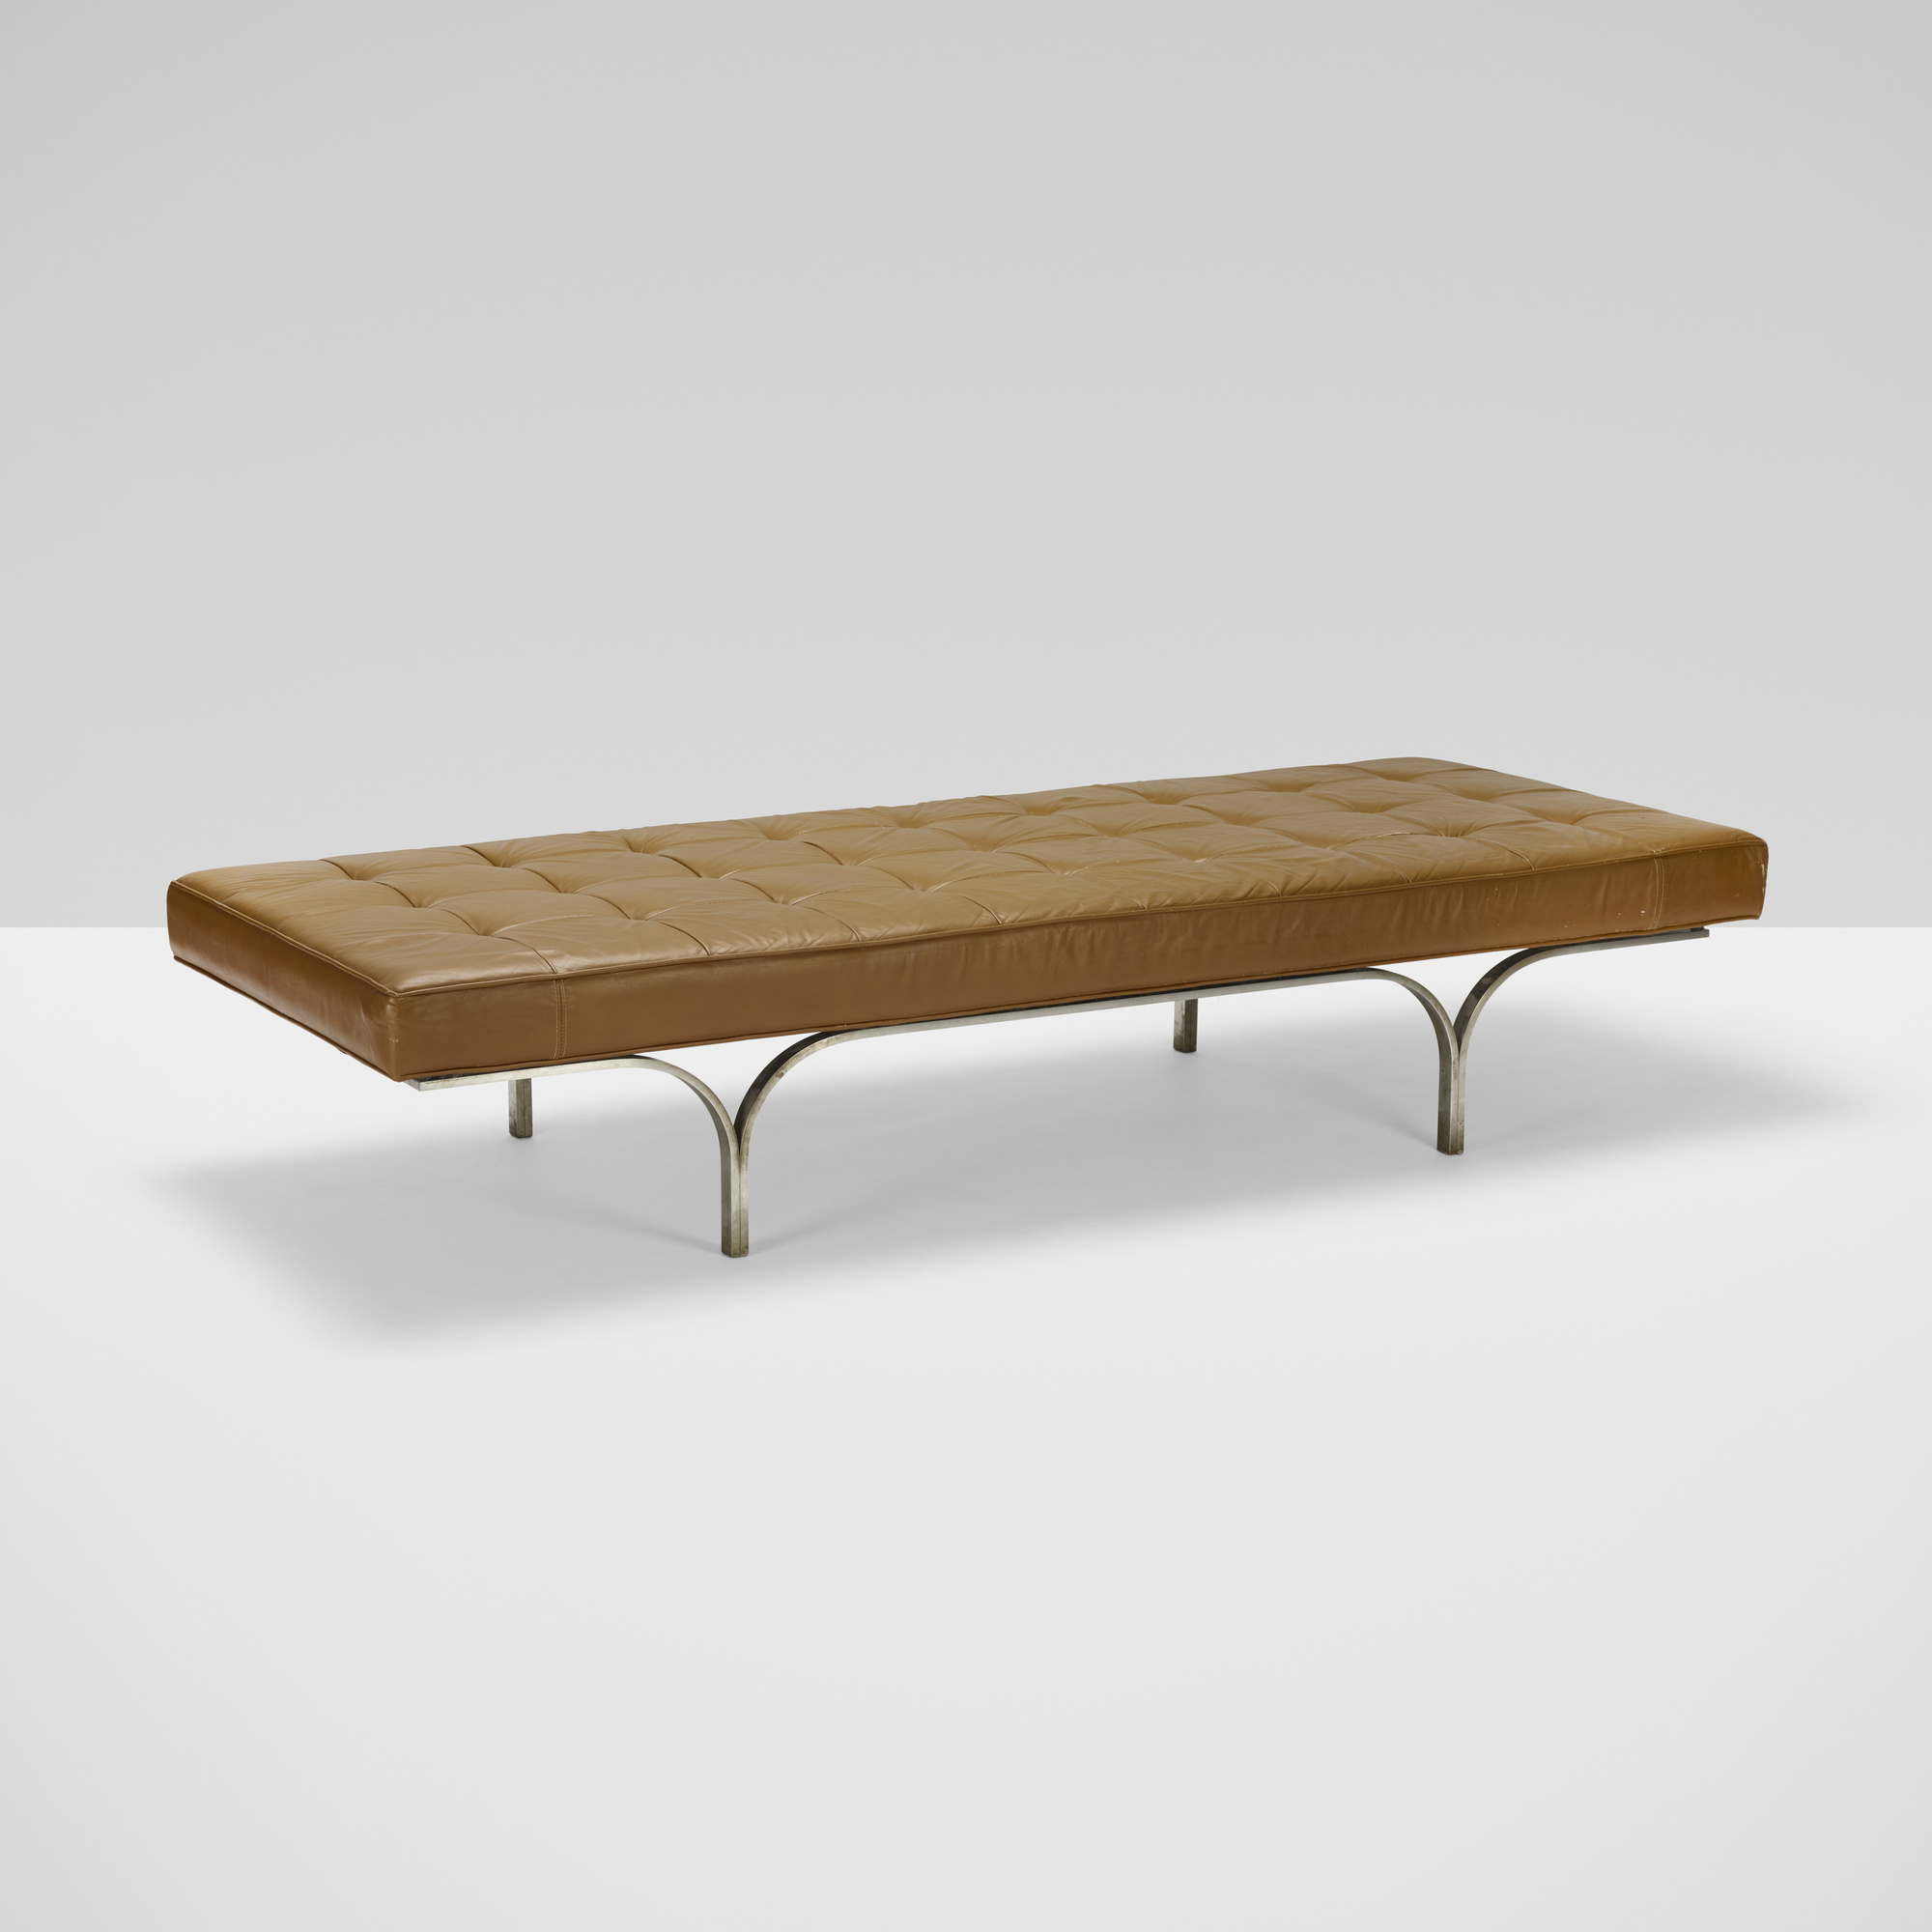 349: Erwine and Estelle Laverne / Philharmonic bench (1 of 3)